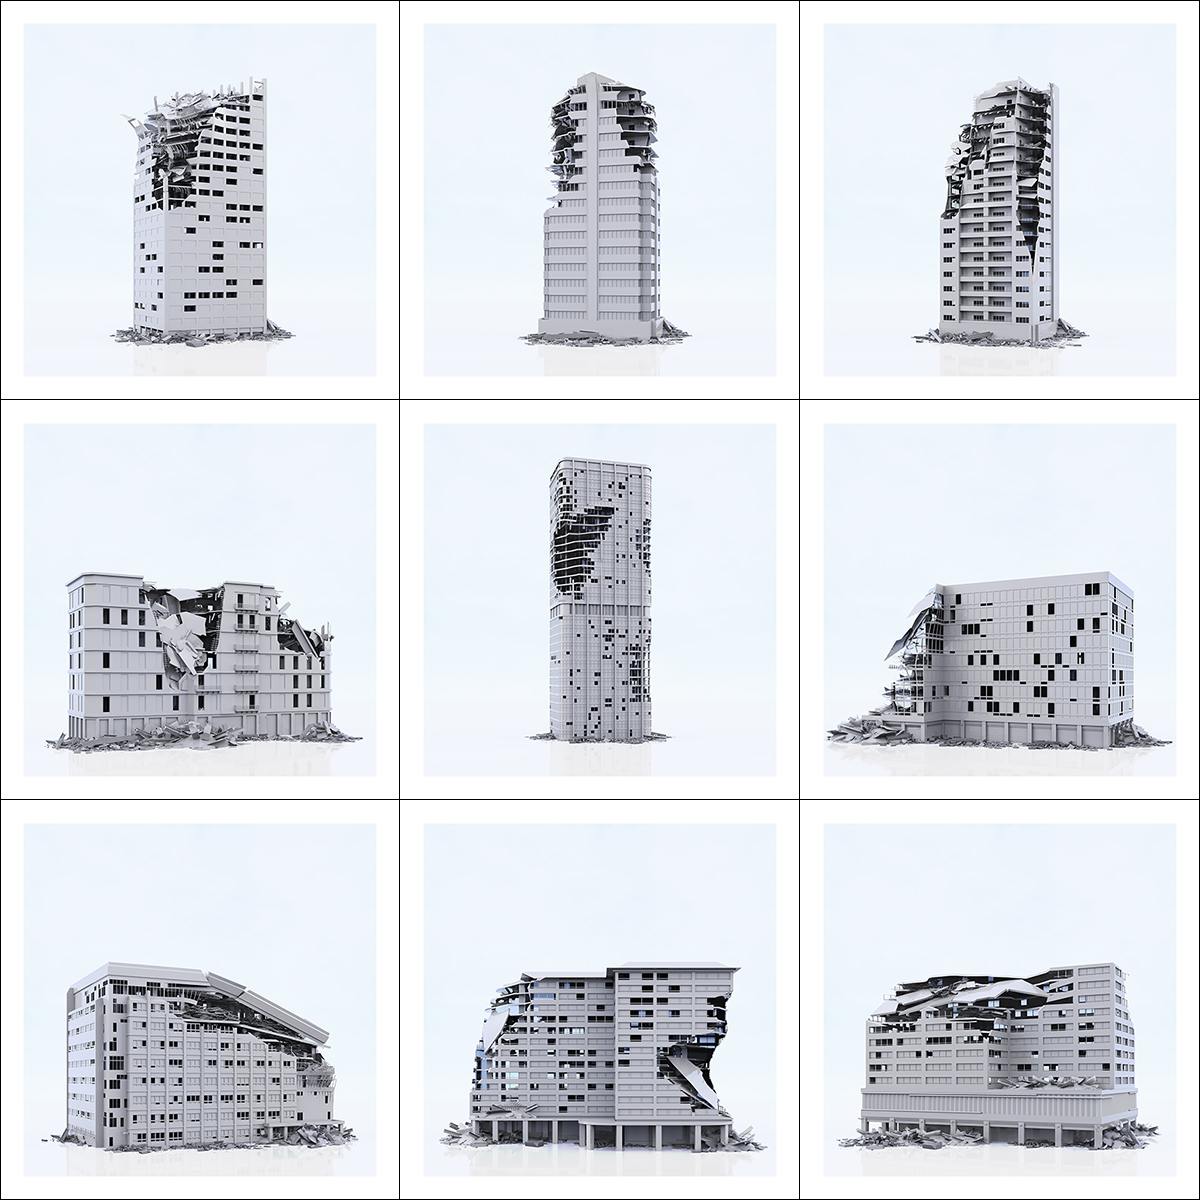 This was HomoSapiens War Affected Buildings 000 2 - 2019 - This was HomoSapiens. War-Affected Buildings